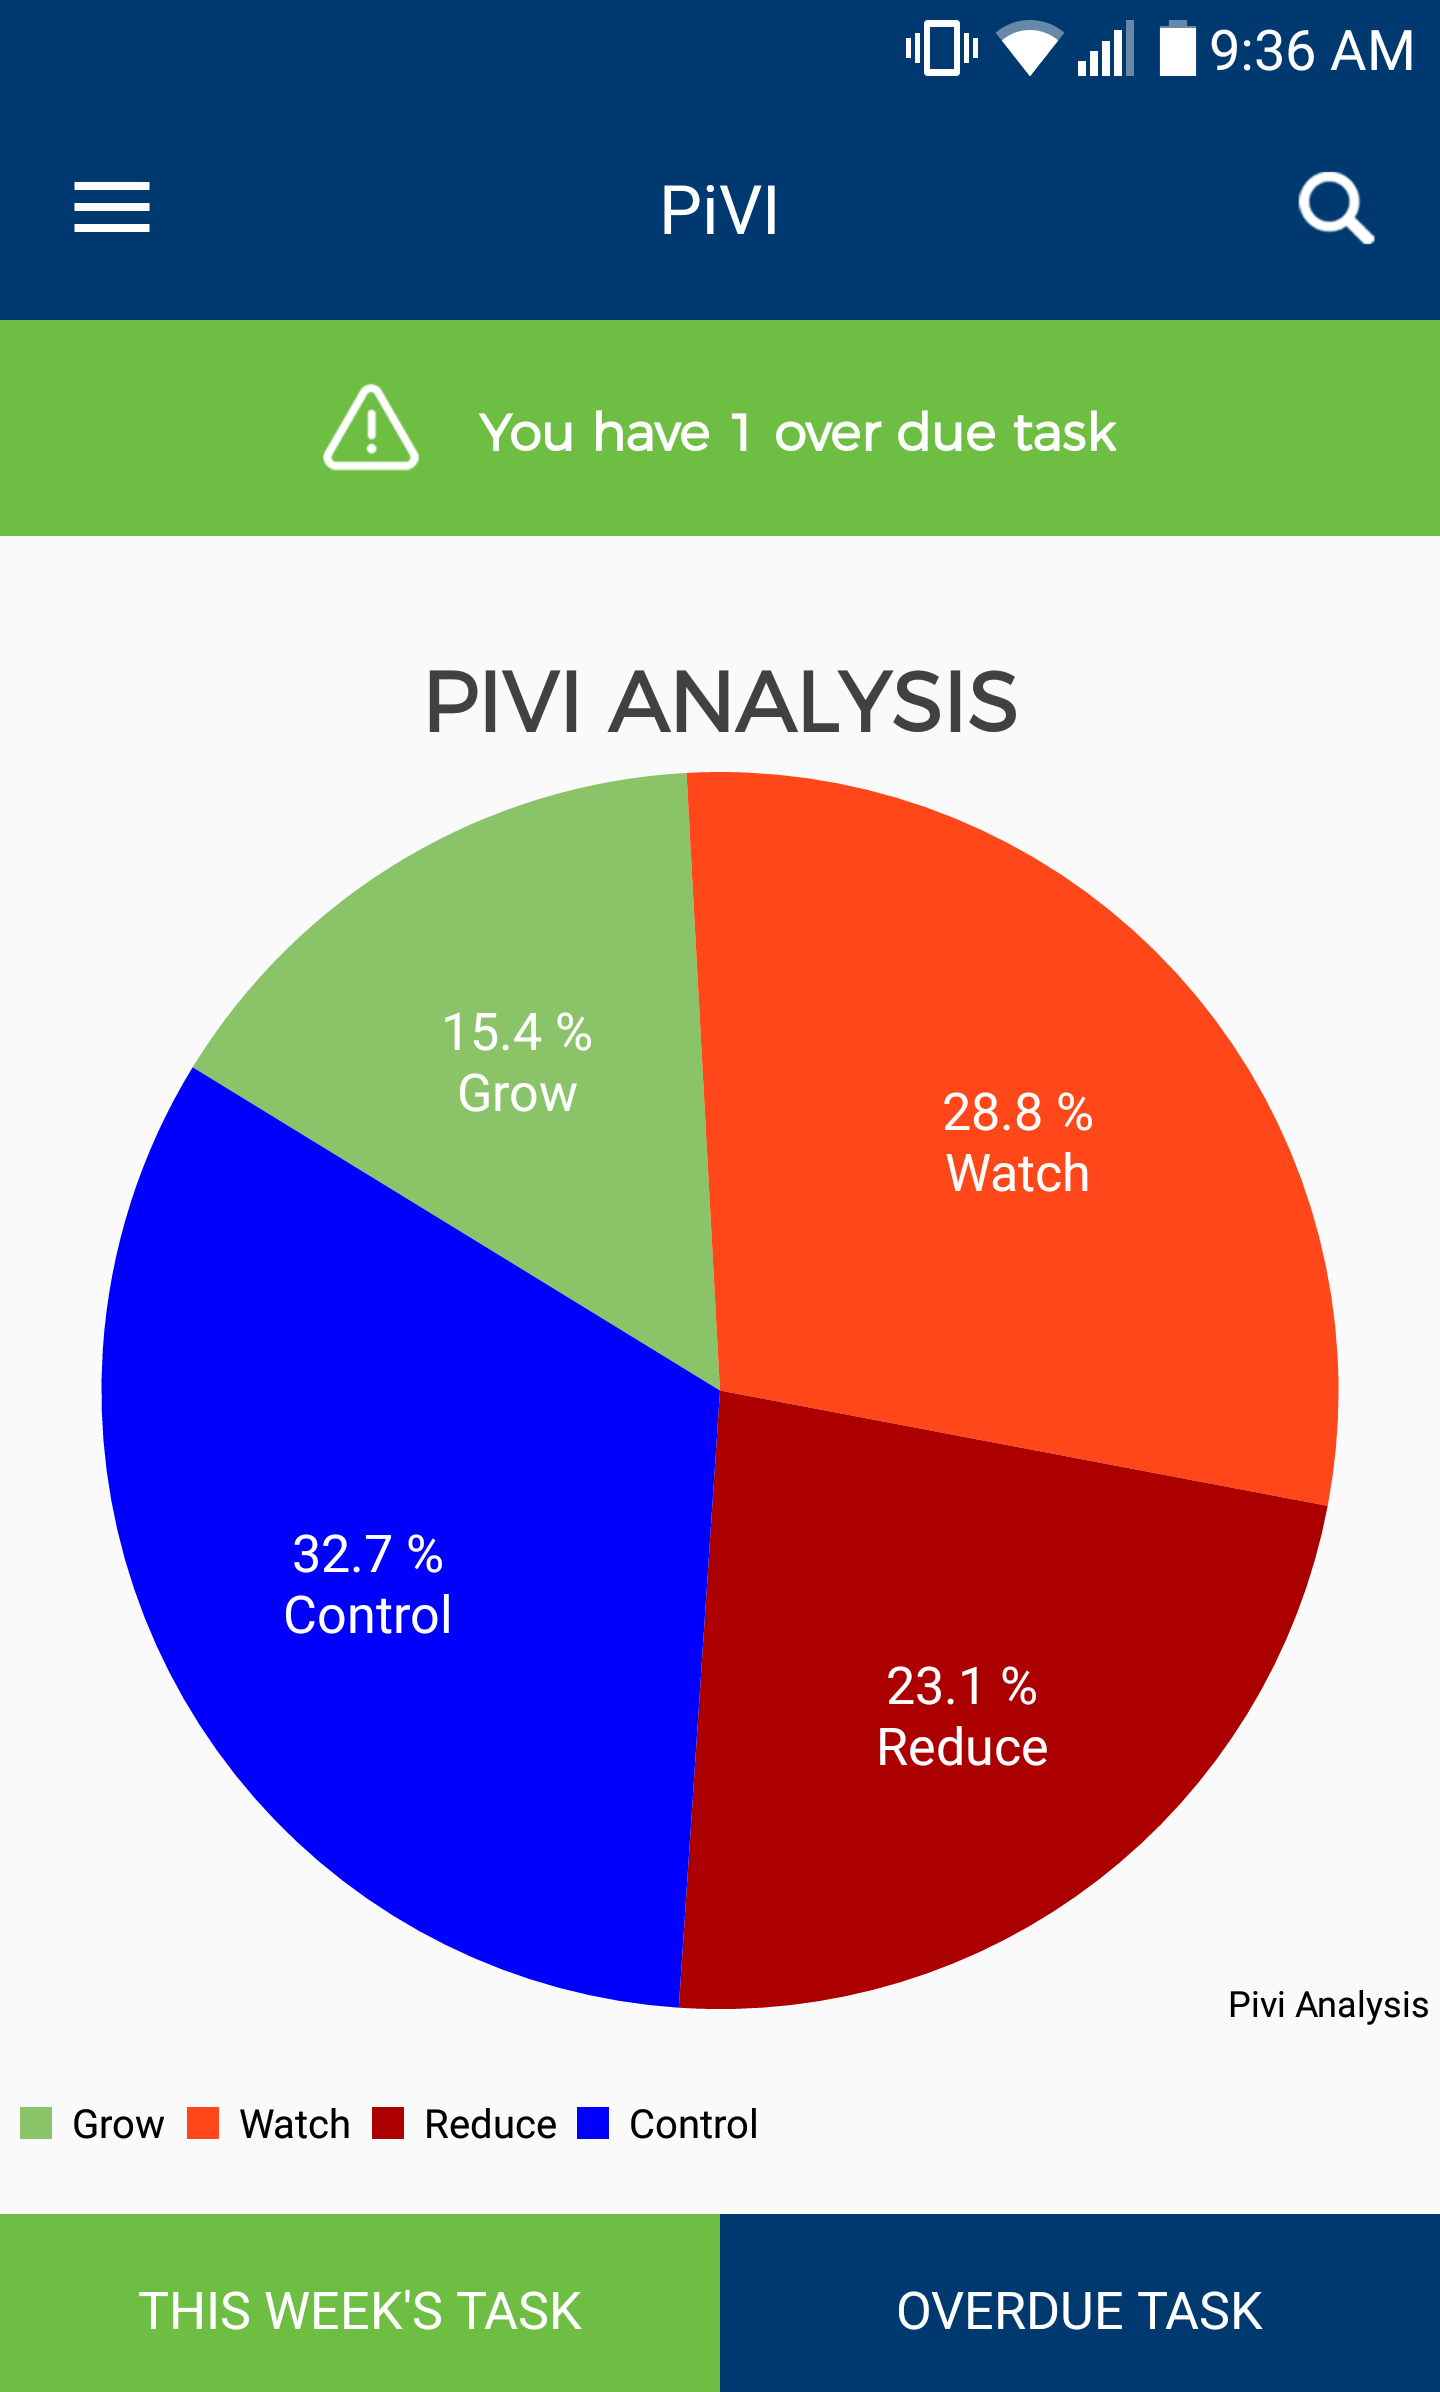 PiVi Analysis